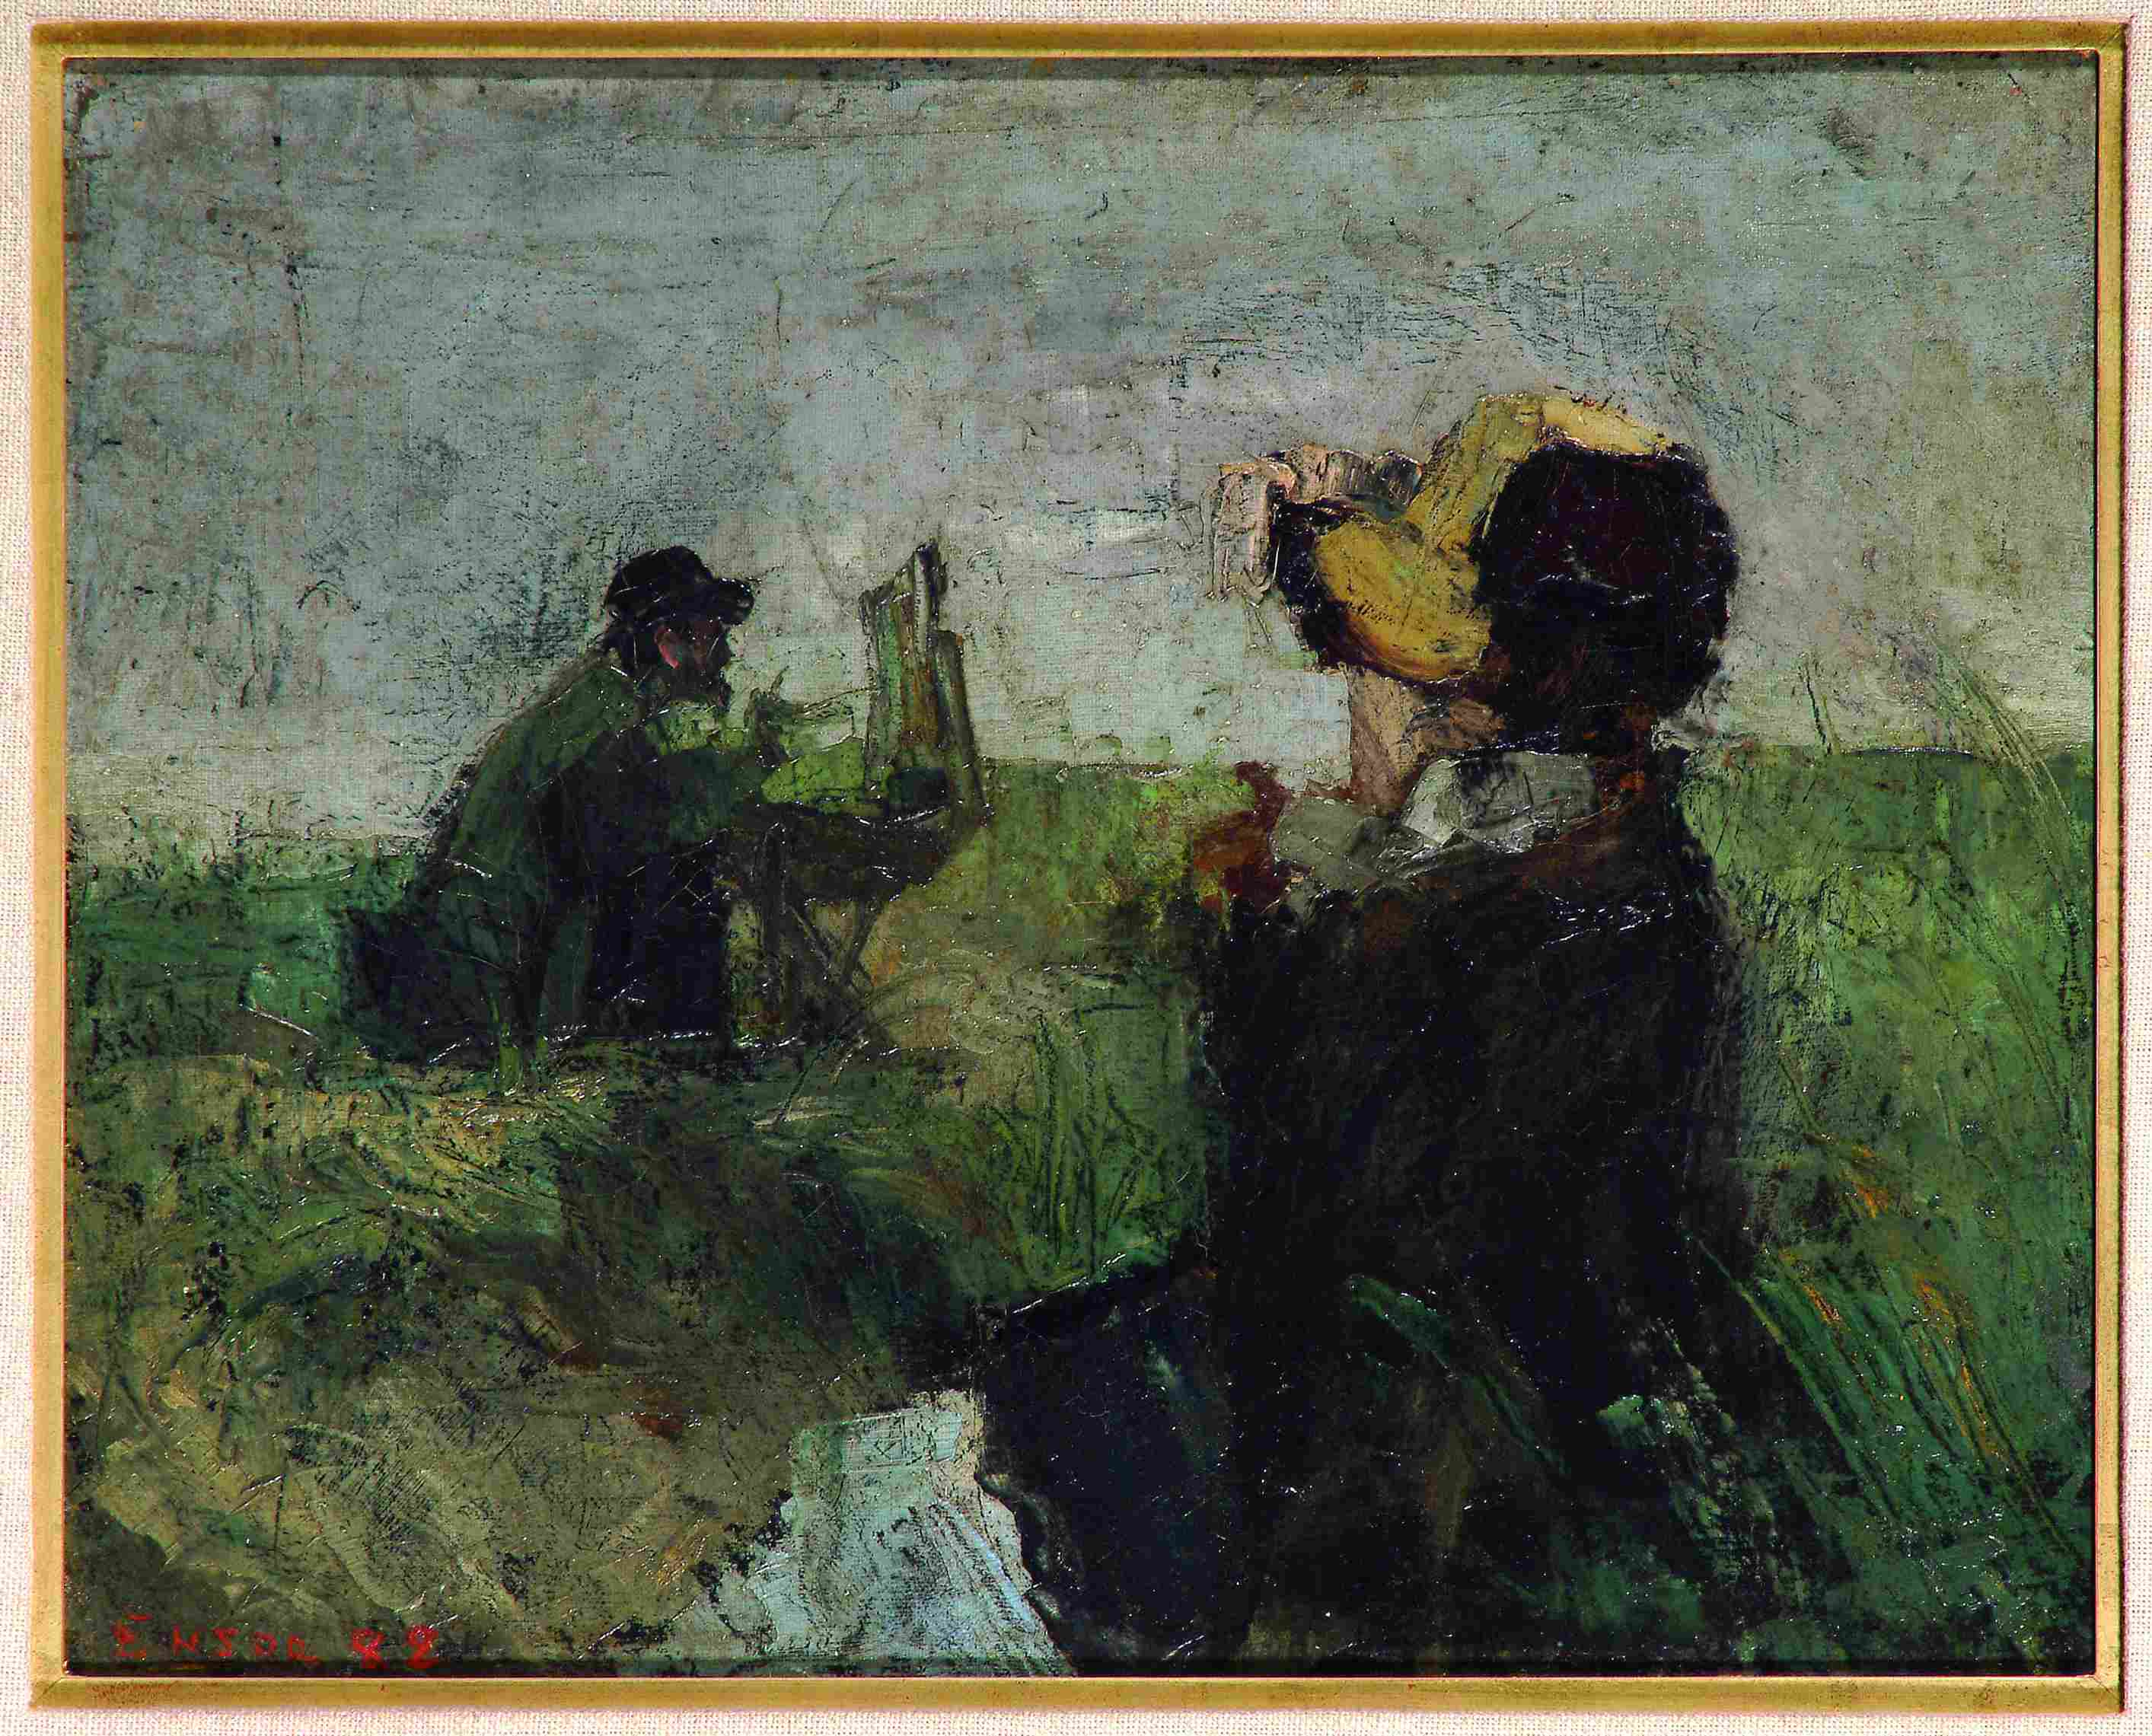 james ensor modèle dans les dunes no previous image return to ...